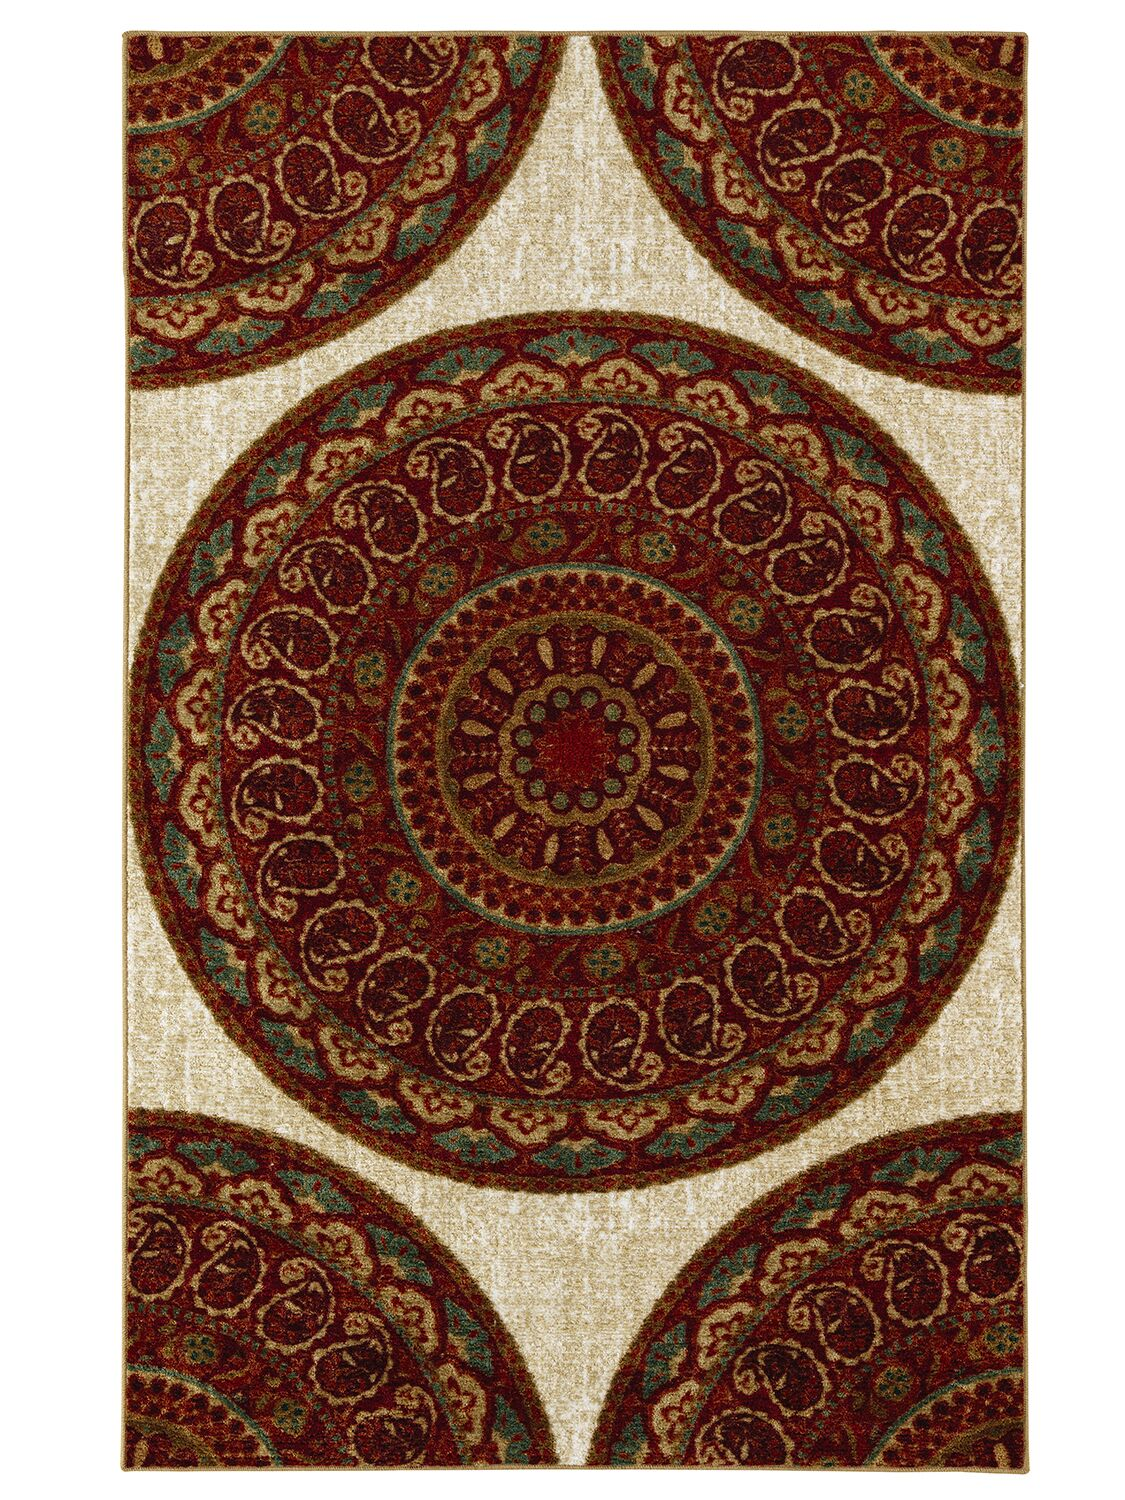 Vermont Beige/Red Area Rug Rug Size: Rectangle 7'6